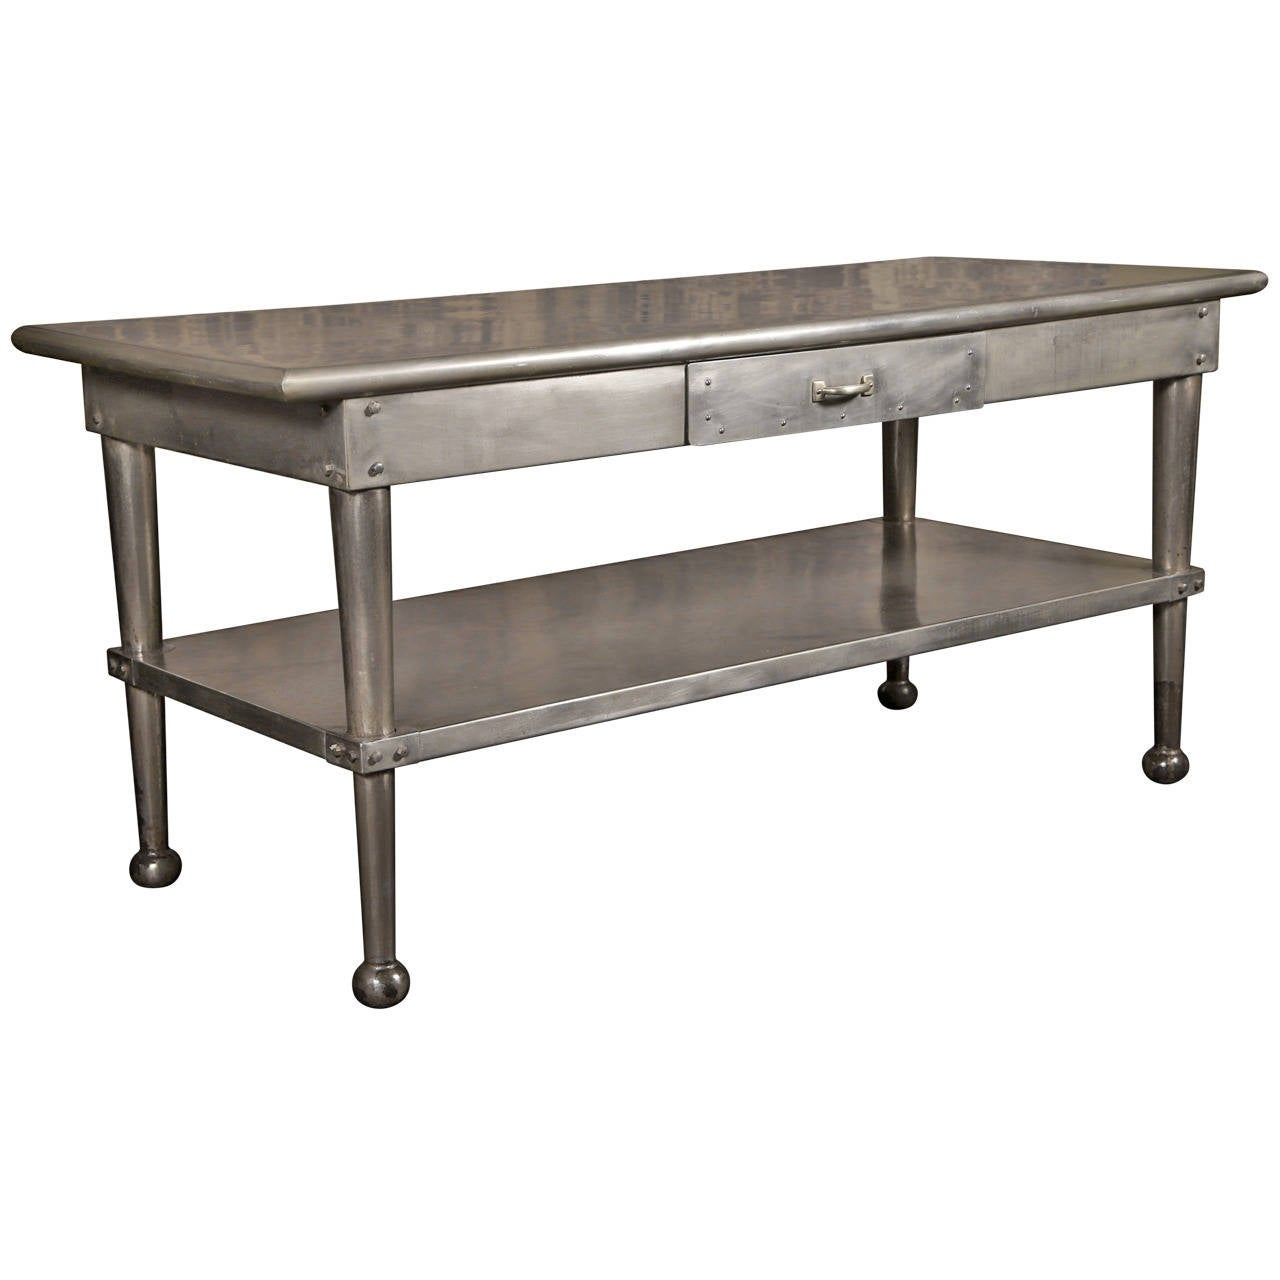 Vintage stainless steel kitchen table at 1stdibs - Stainless kitchen tables ...